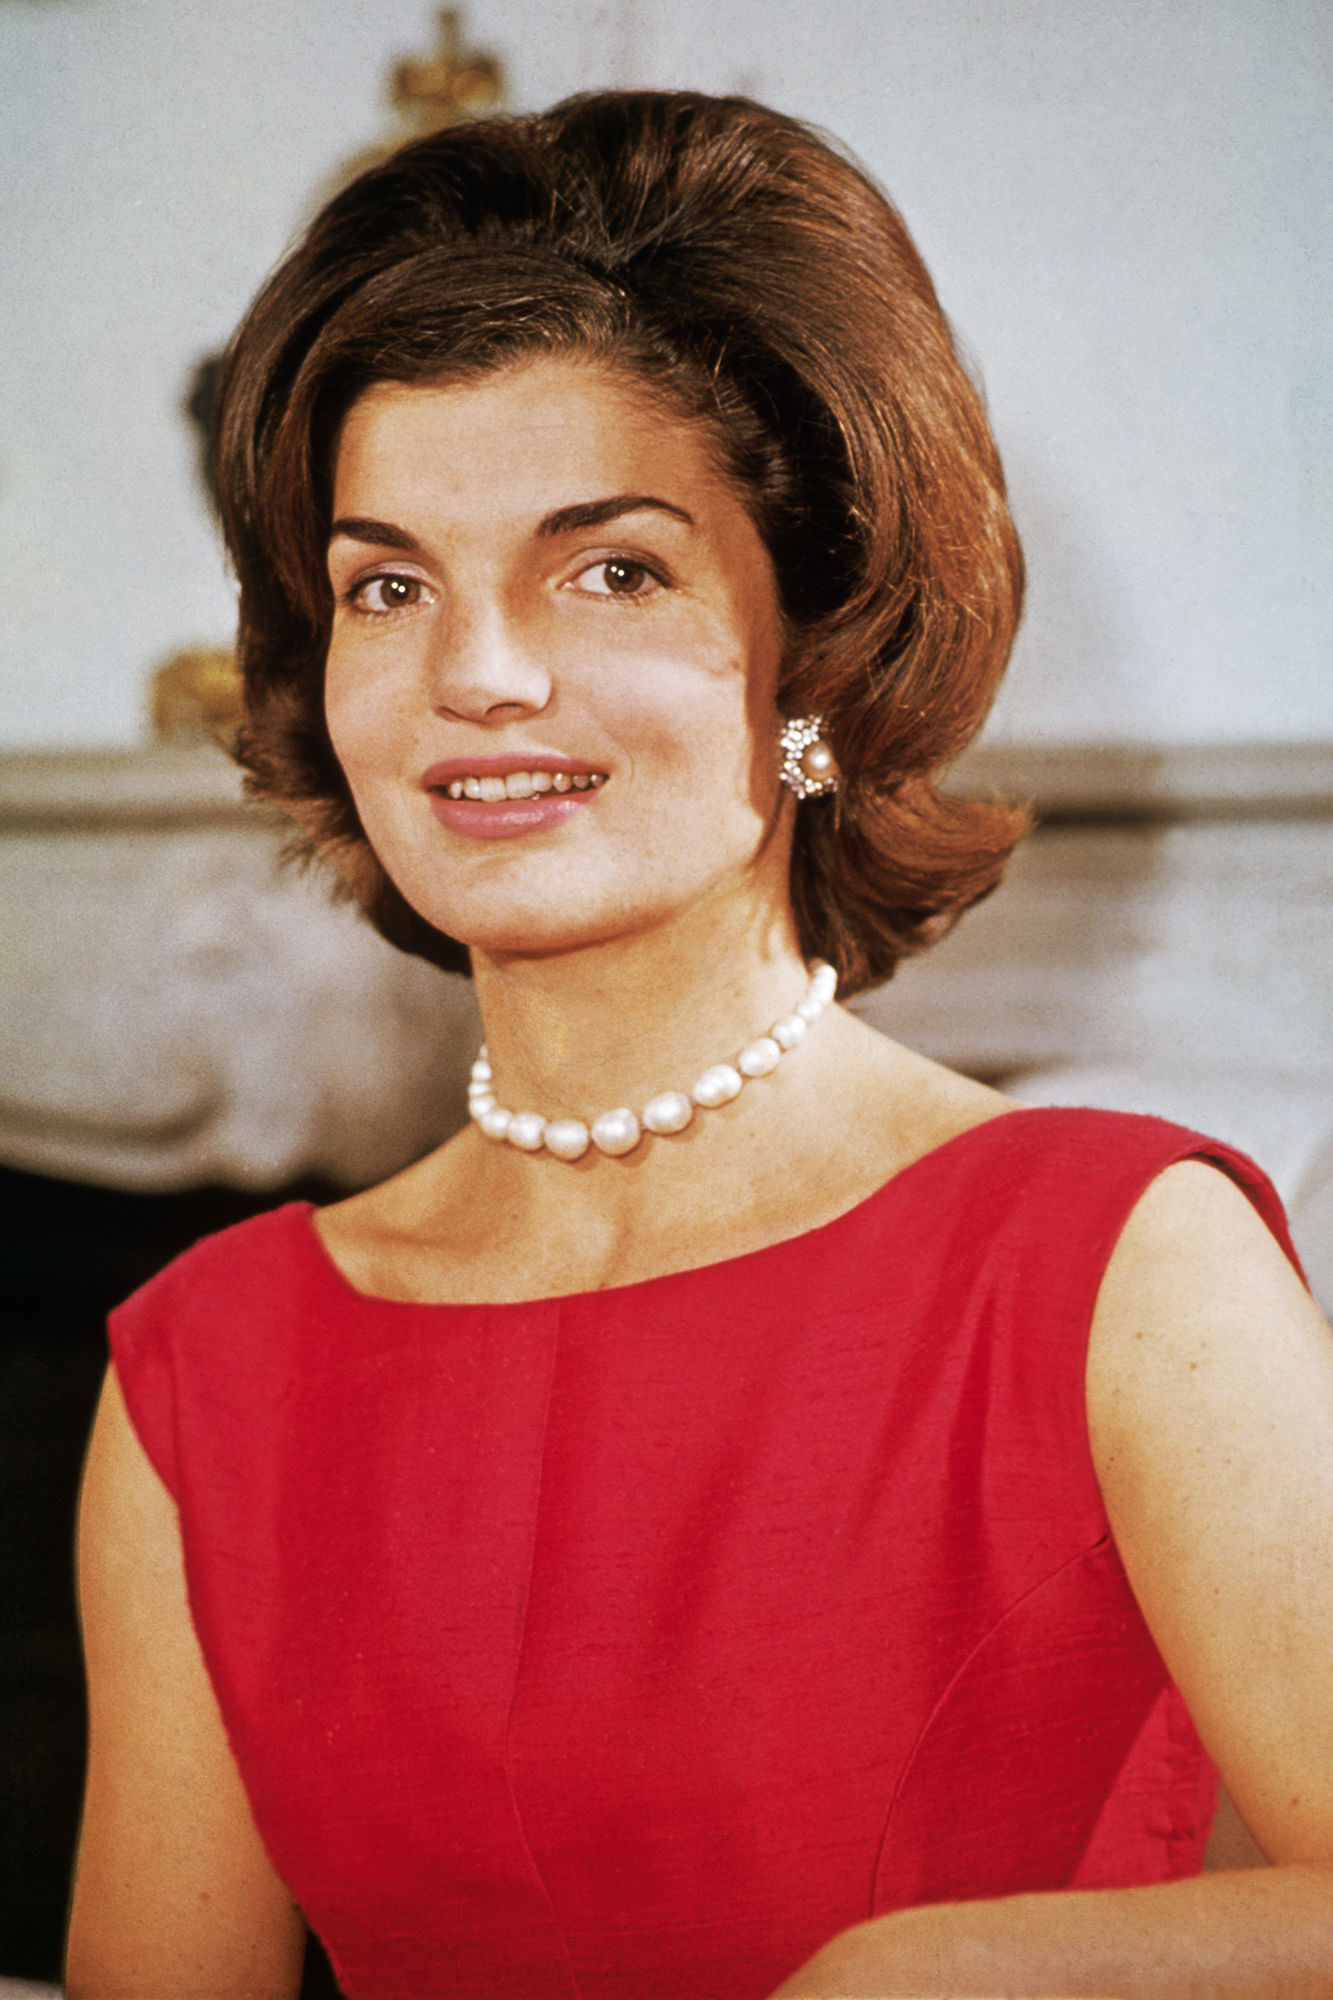 From Pond's Cold Cream to Self-Care: Jackie Kennedy's Beauty Secrets to Mark Her 90th Birthday